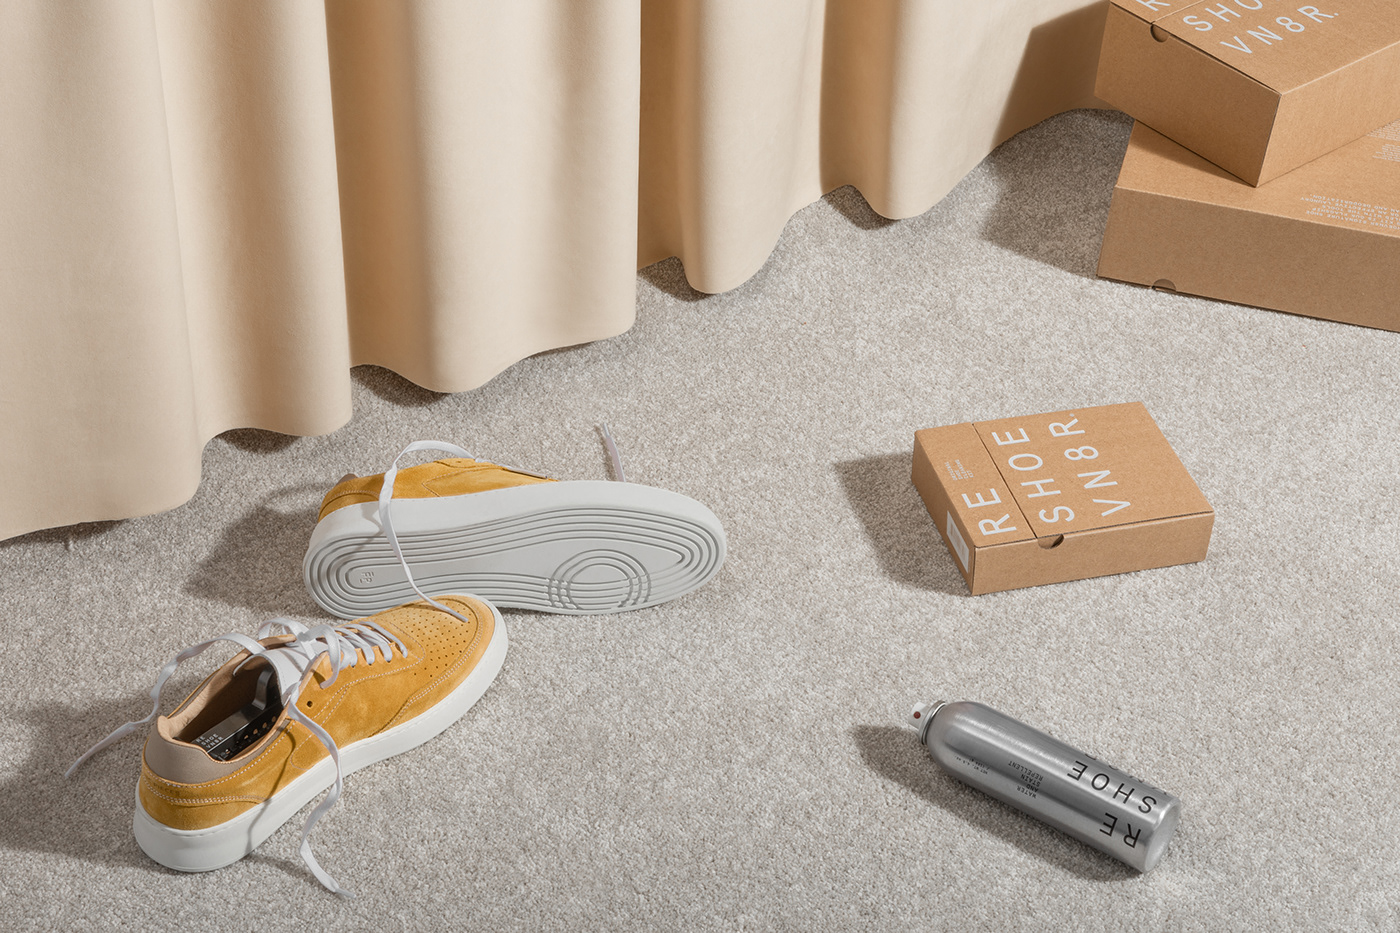 Reshoevn8r Shoe Cleaning Kit on carpet with yellow sneakers